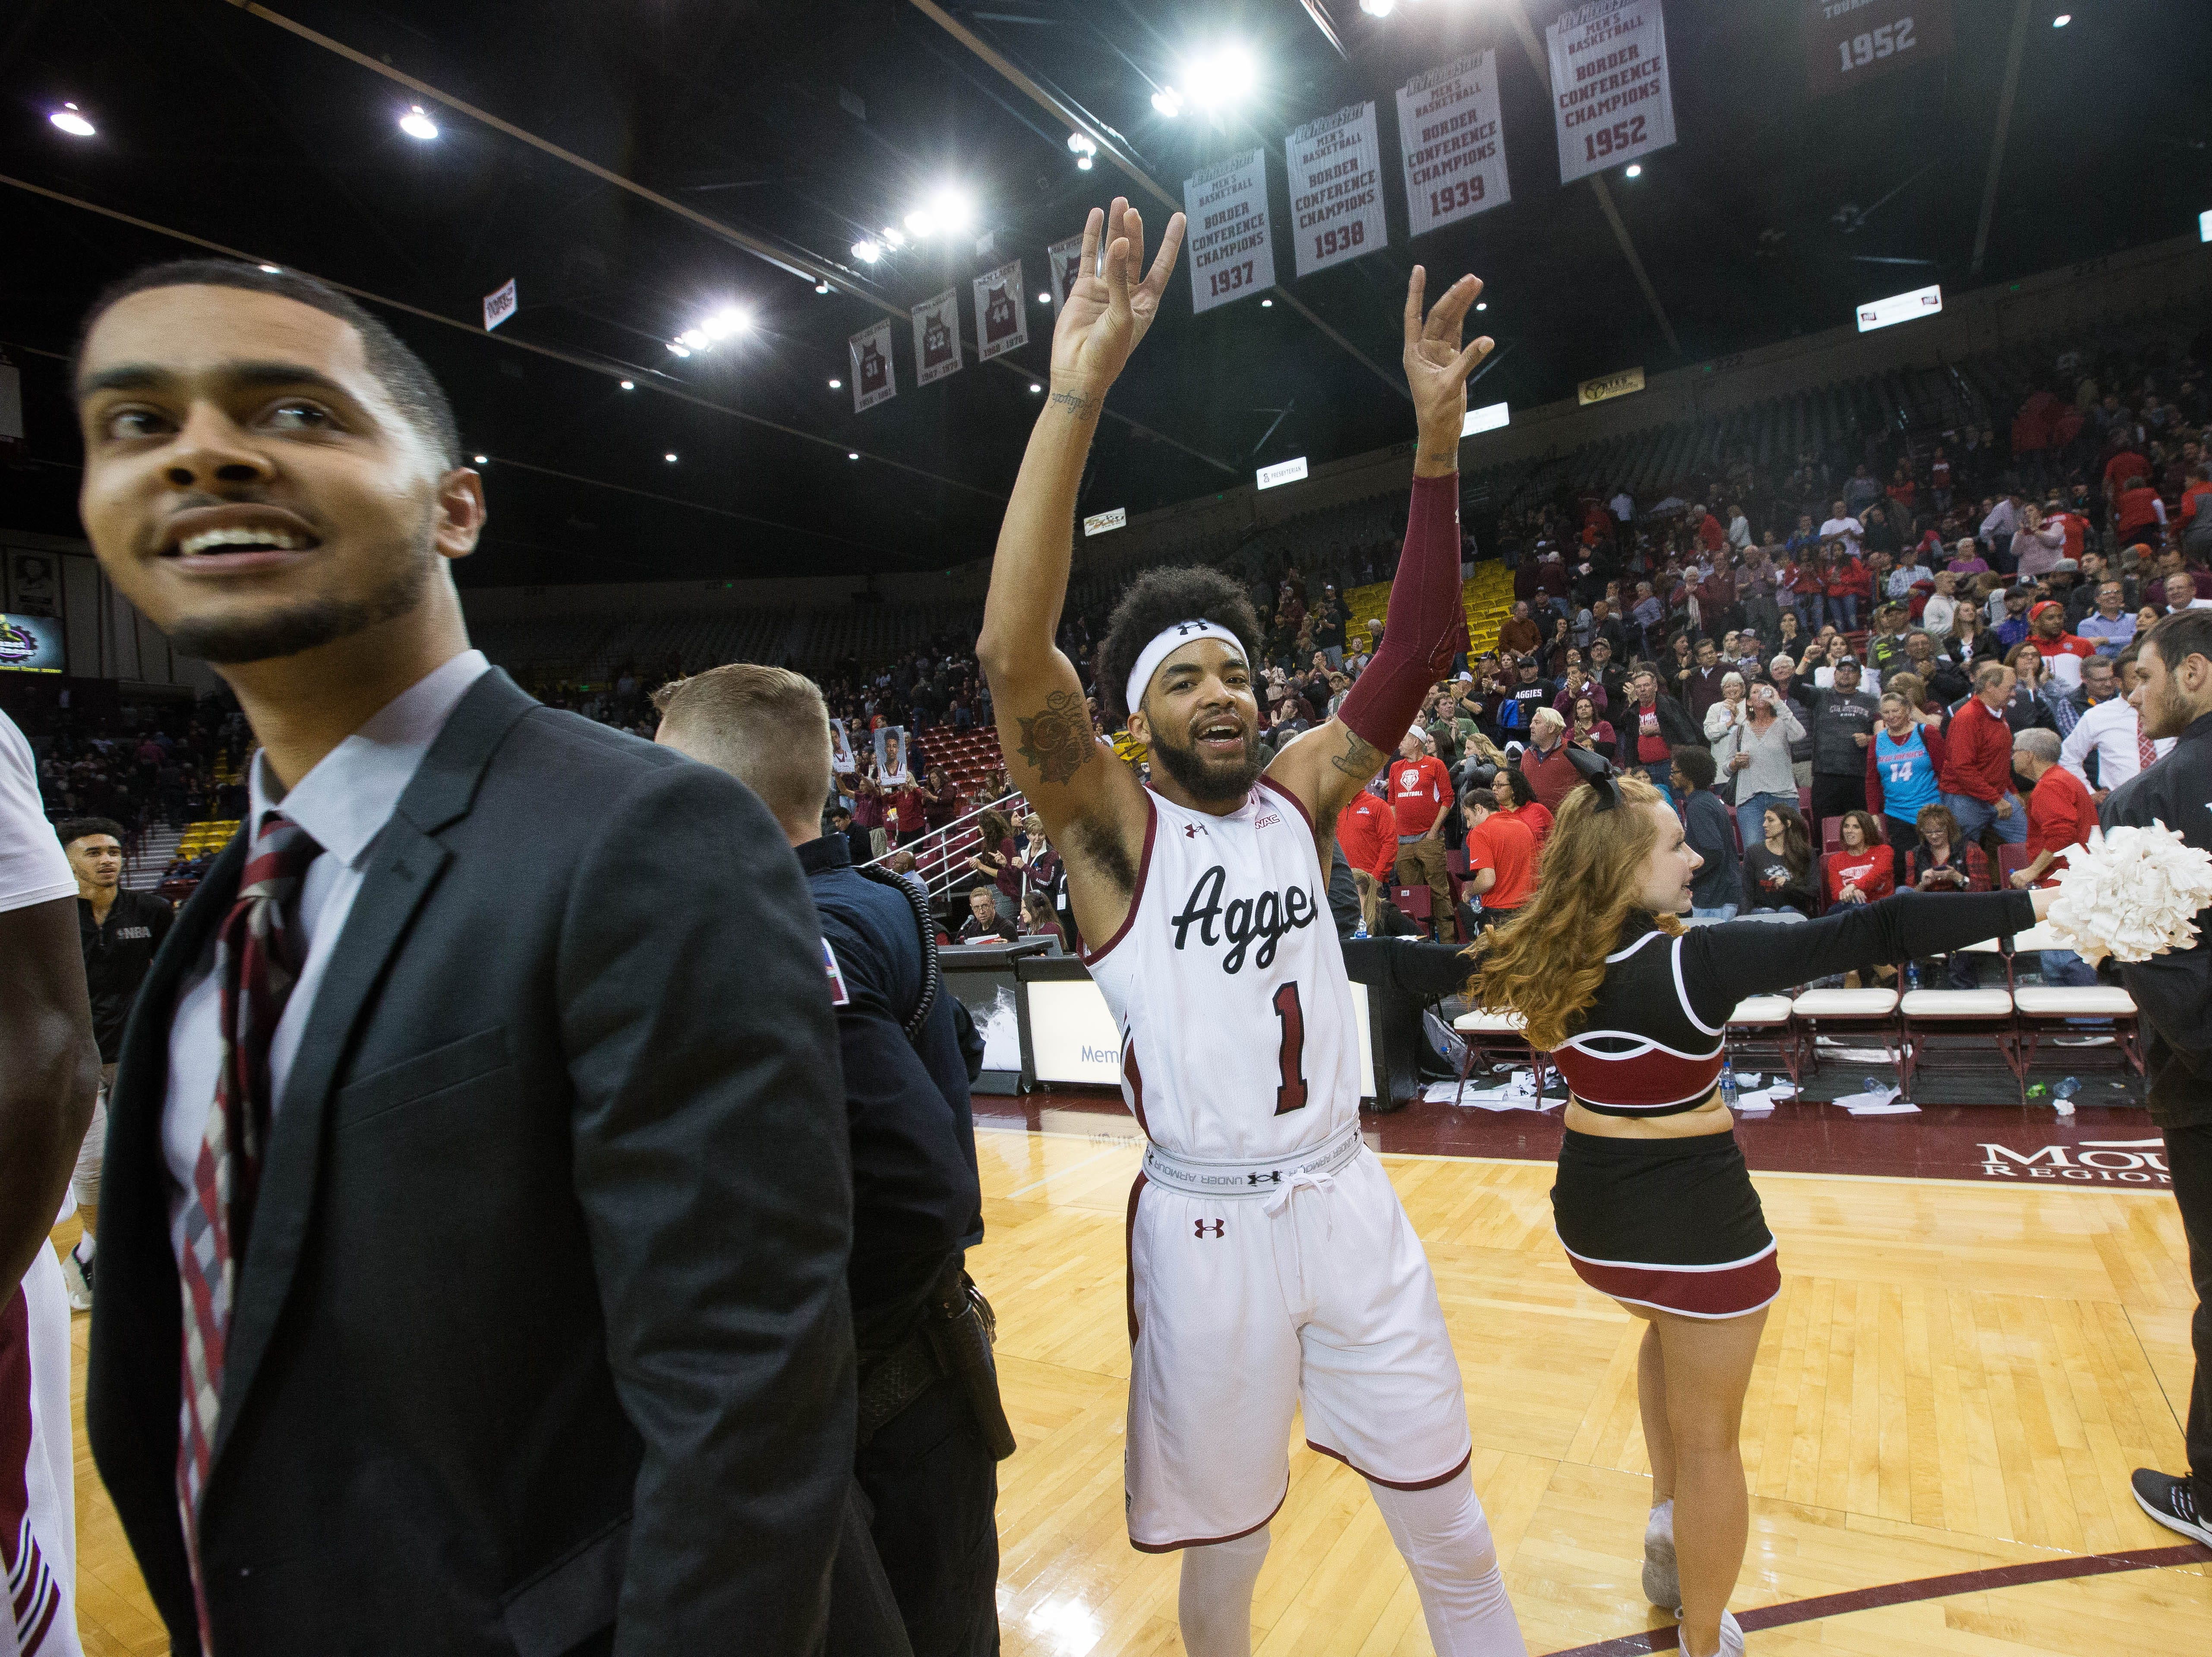 New Mexico State faces No. 2 Kansas in nationally televised matchup